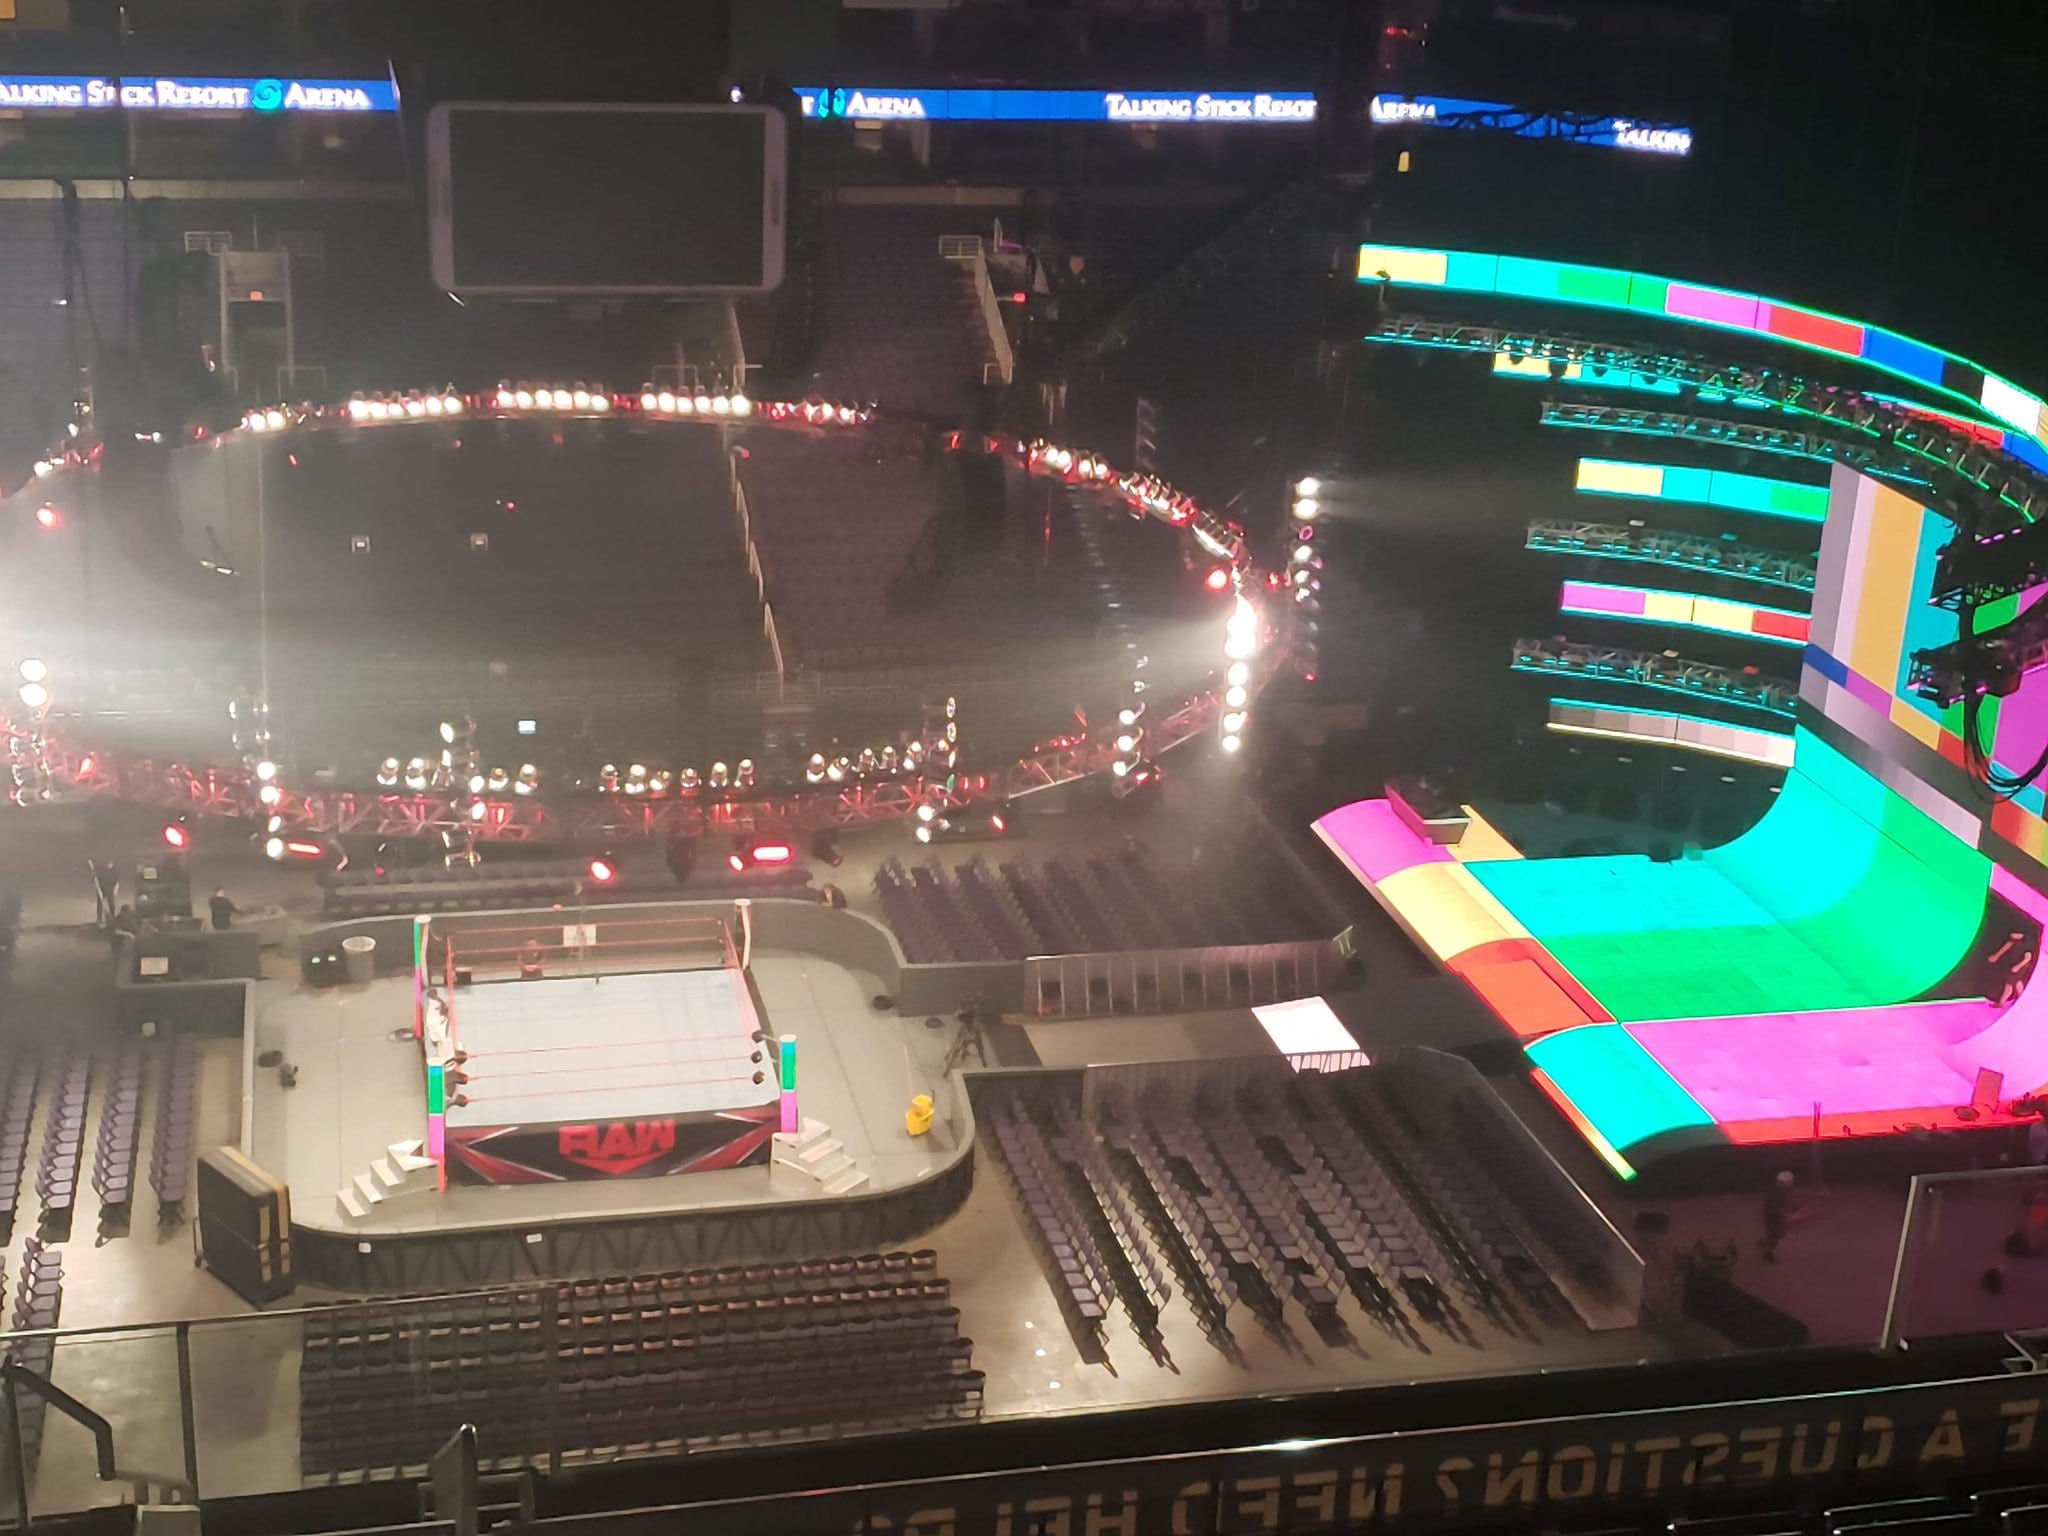 New WWE RAW Entrance Stage Set 2019